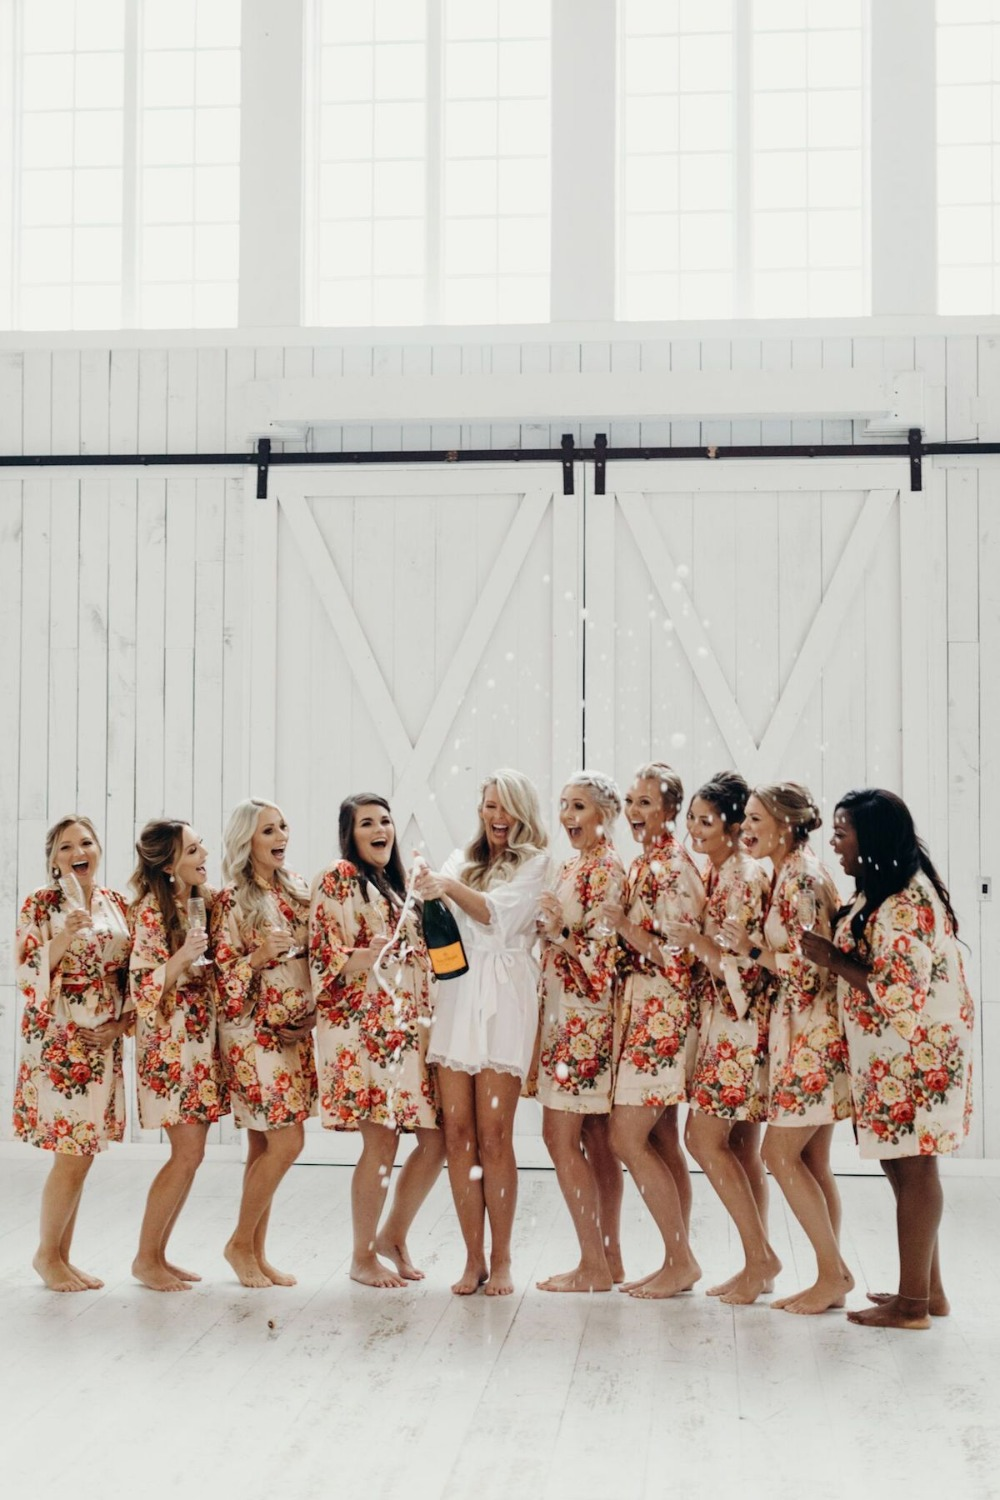 Champagne toast bridesmaids